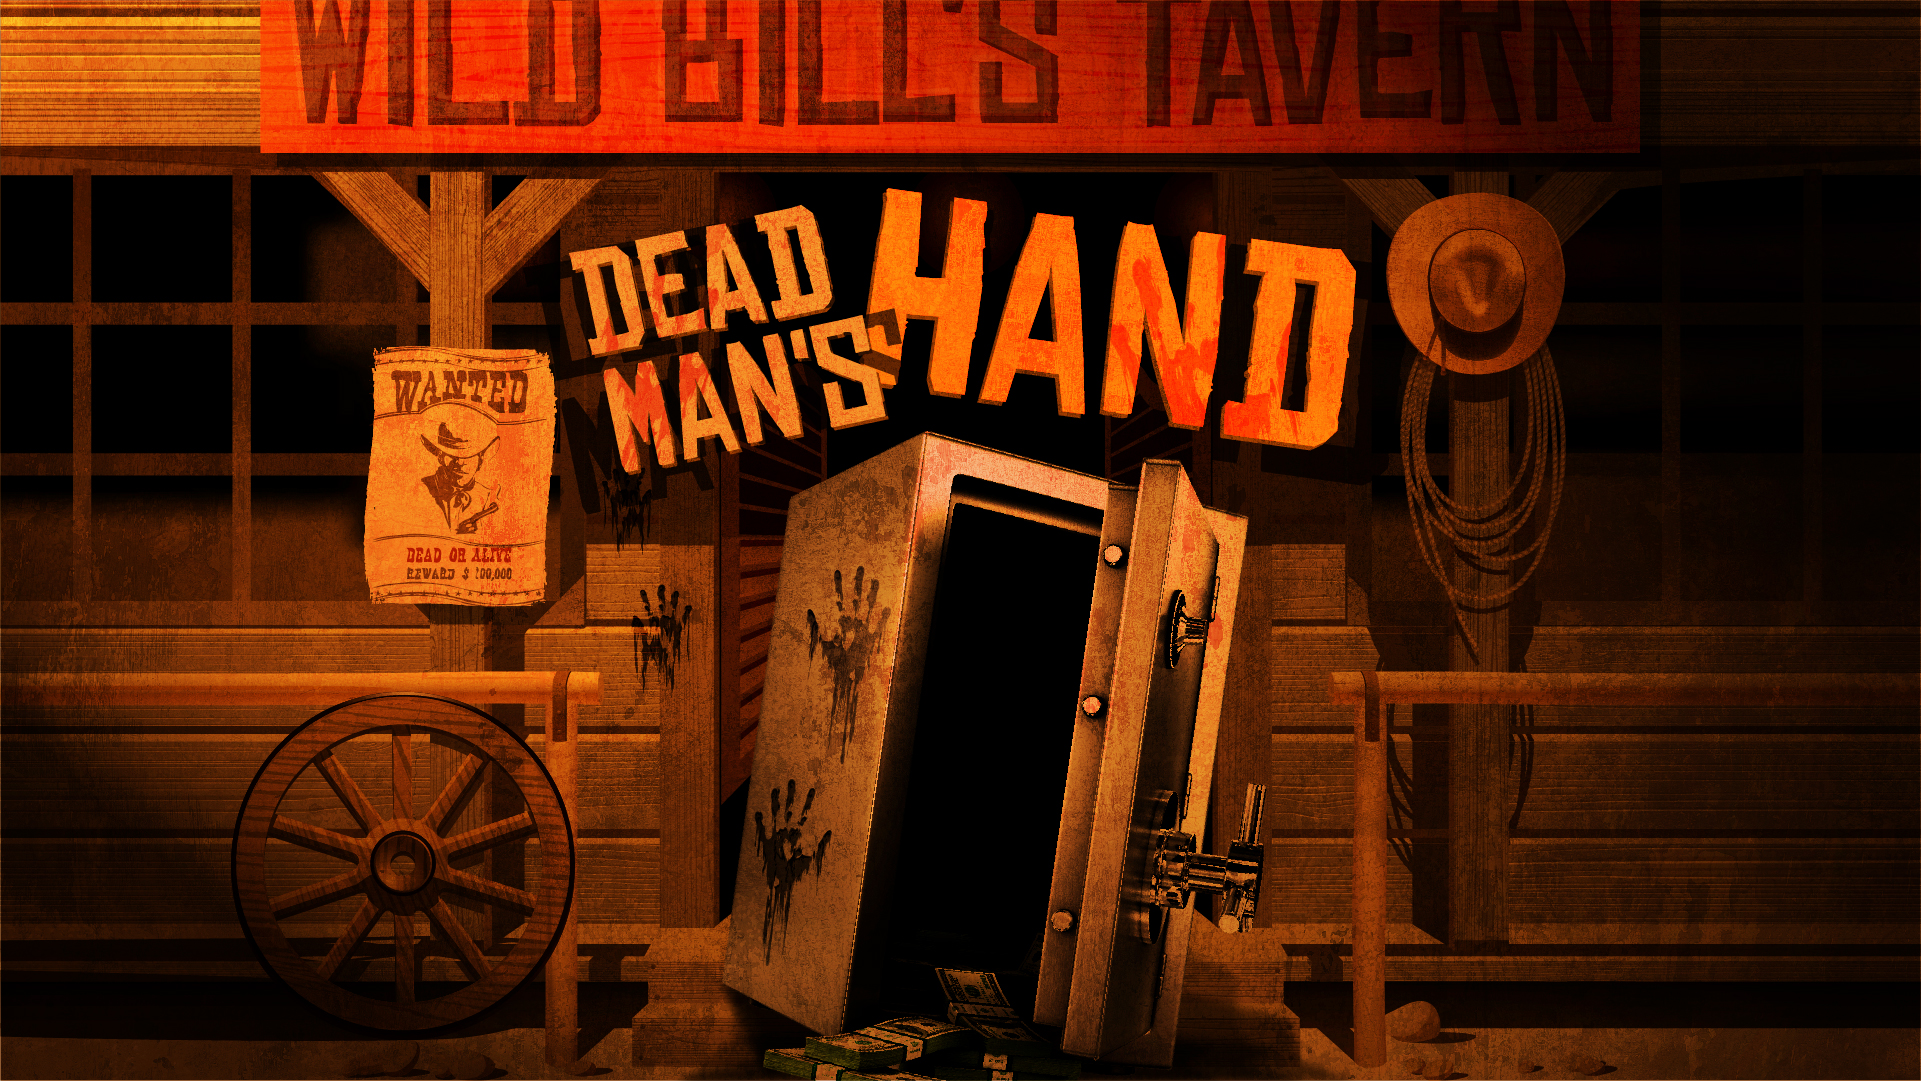 DEAD MAN'S HAND - OPEN SOON AT THE GATEYour band of outlaws have been travelling for days on route to Wild Bill's Tavern. Stories tell of a great treasure held in the Tavern's safe. You've sent a couple of your band to distract the Sheriff but they have bought you little more than an hour to get into the safe and retrieve the Dead Man's Hand!